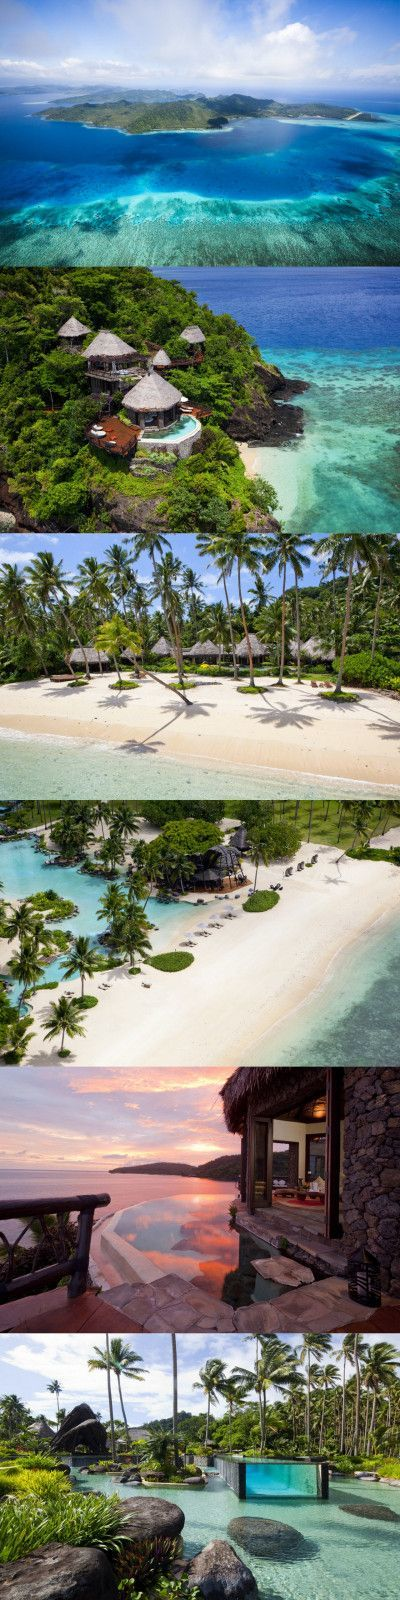 Laucala Island - Welcome to Paradise